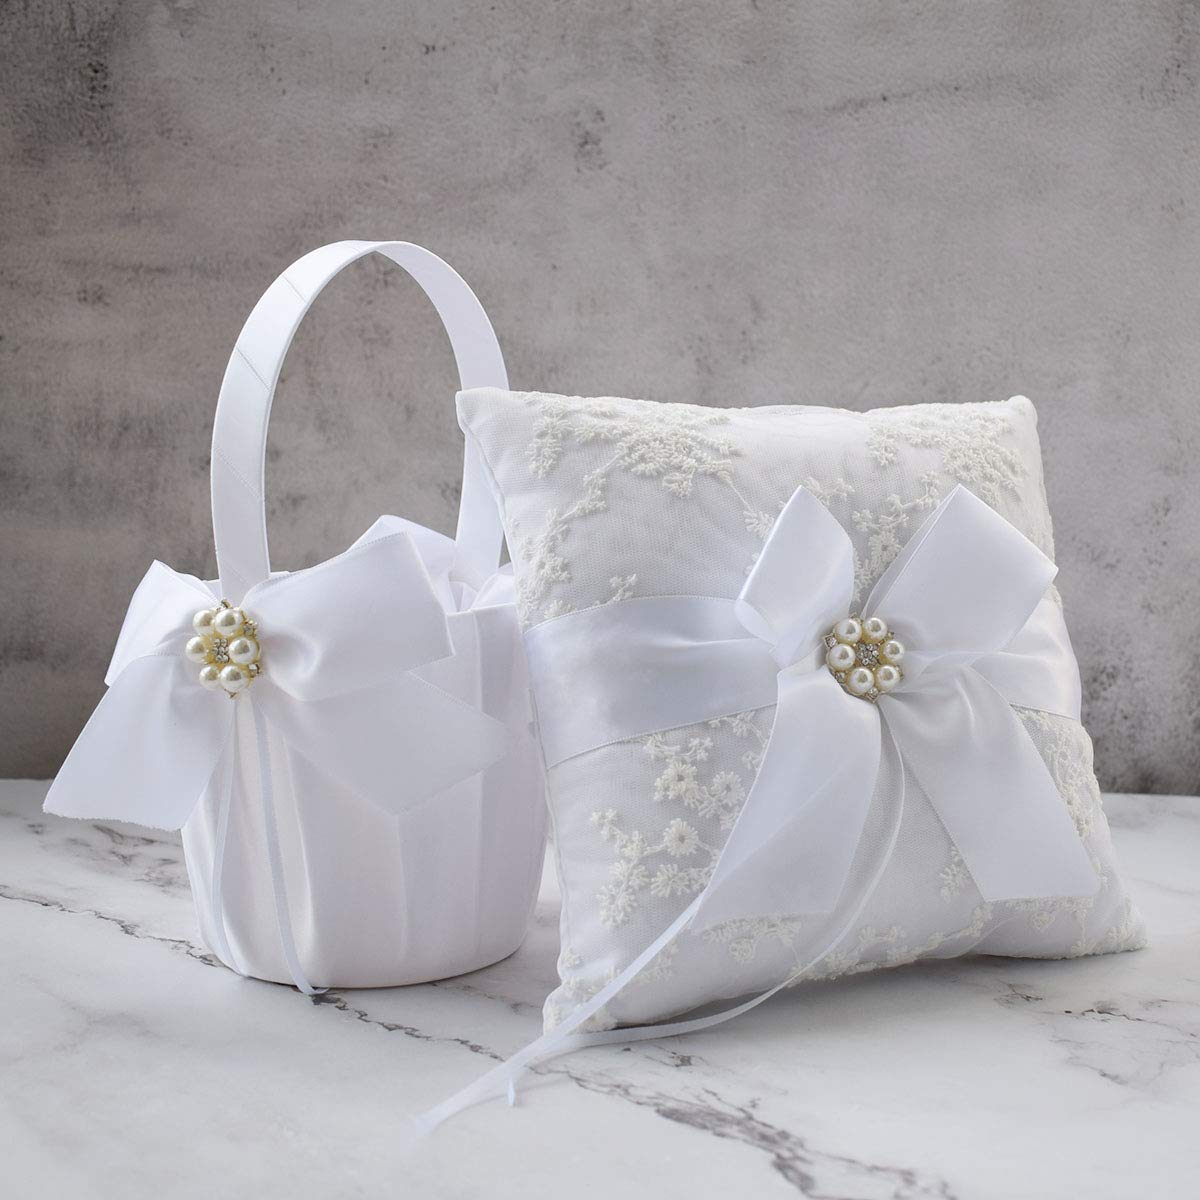 ATAILOVE Wedding Flower Girl Basket and Ring Bearer Pillow Set, Satin Bow Lace Rhinestone Collection (White) by ATAILOVE